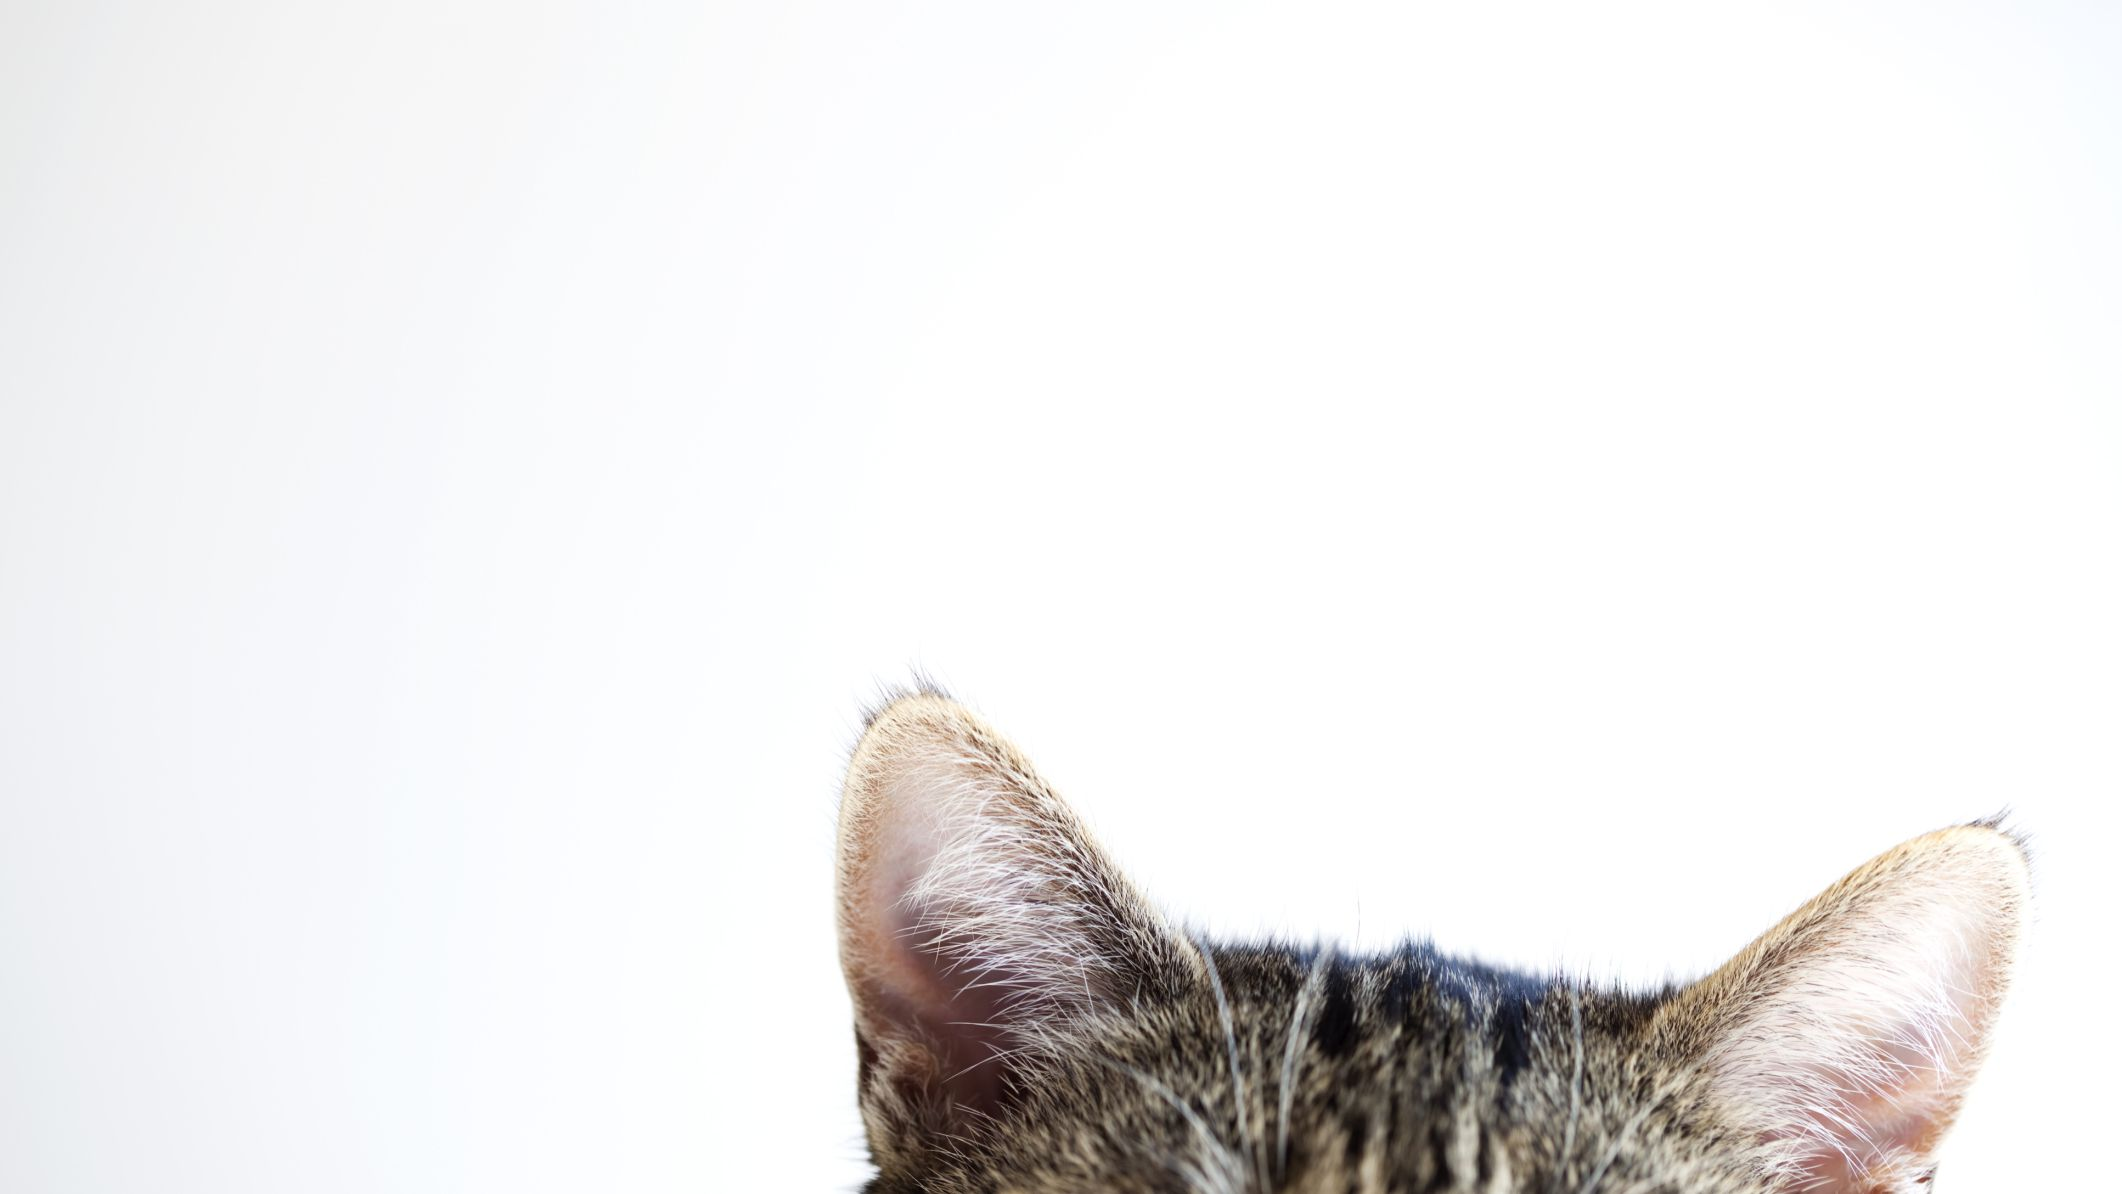 All About Sense of Hearing in Cats